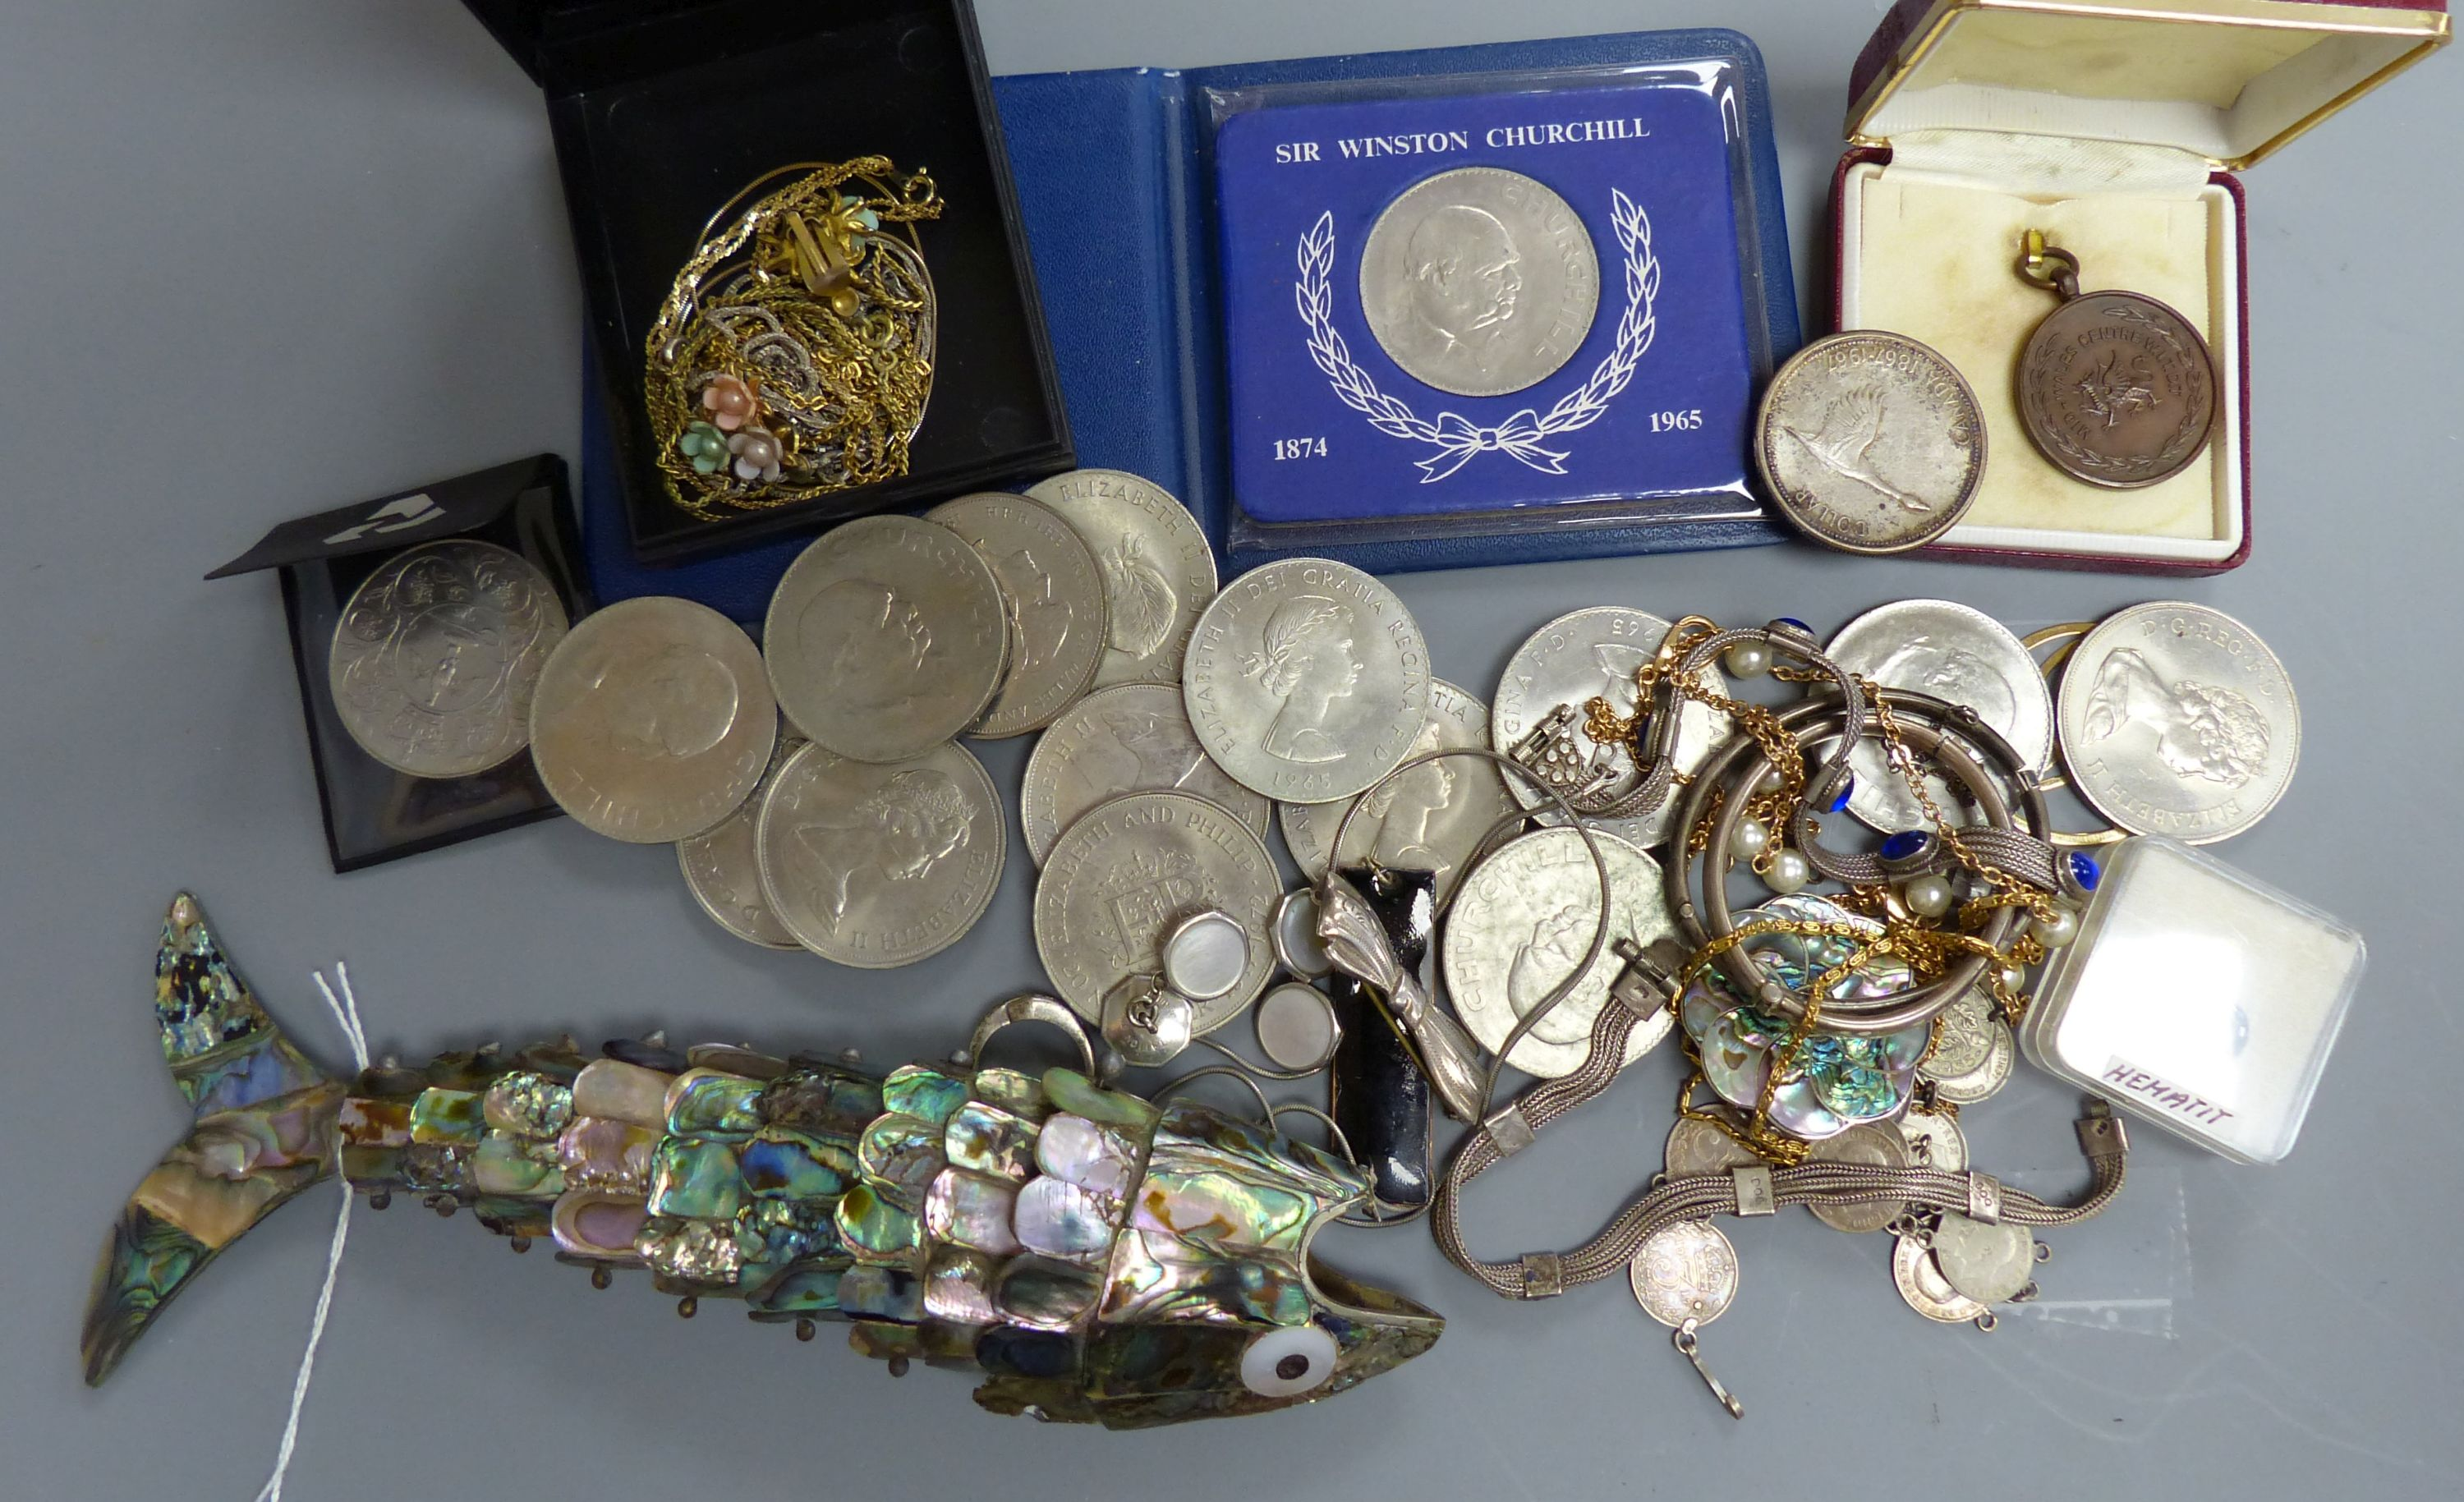 A quantity of mixed costume jewellery, an articulated fish, coins etc - Image 2 of 5